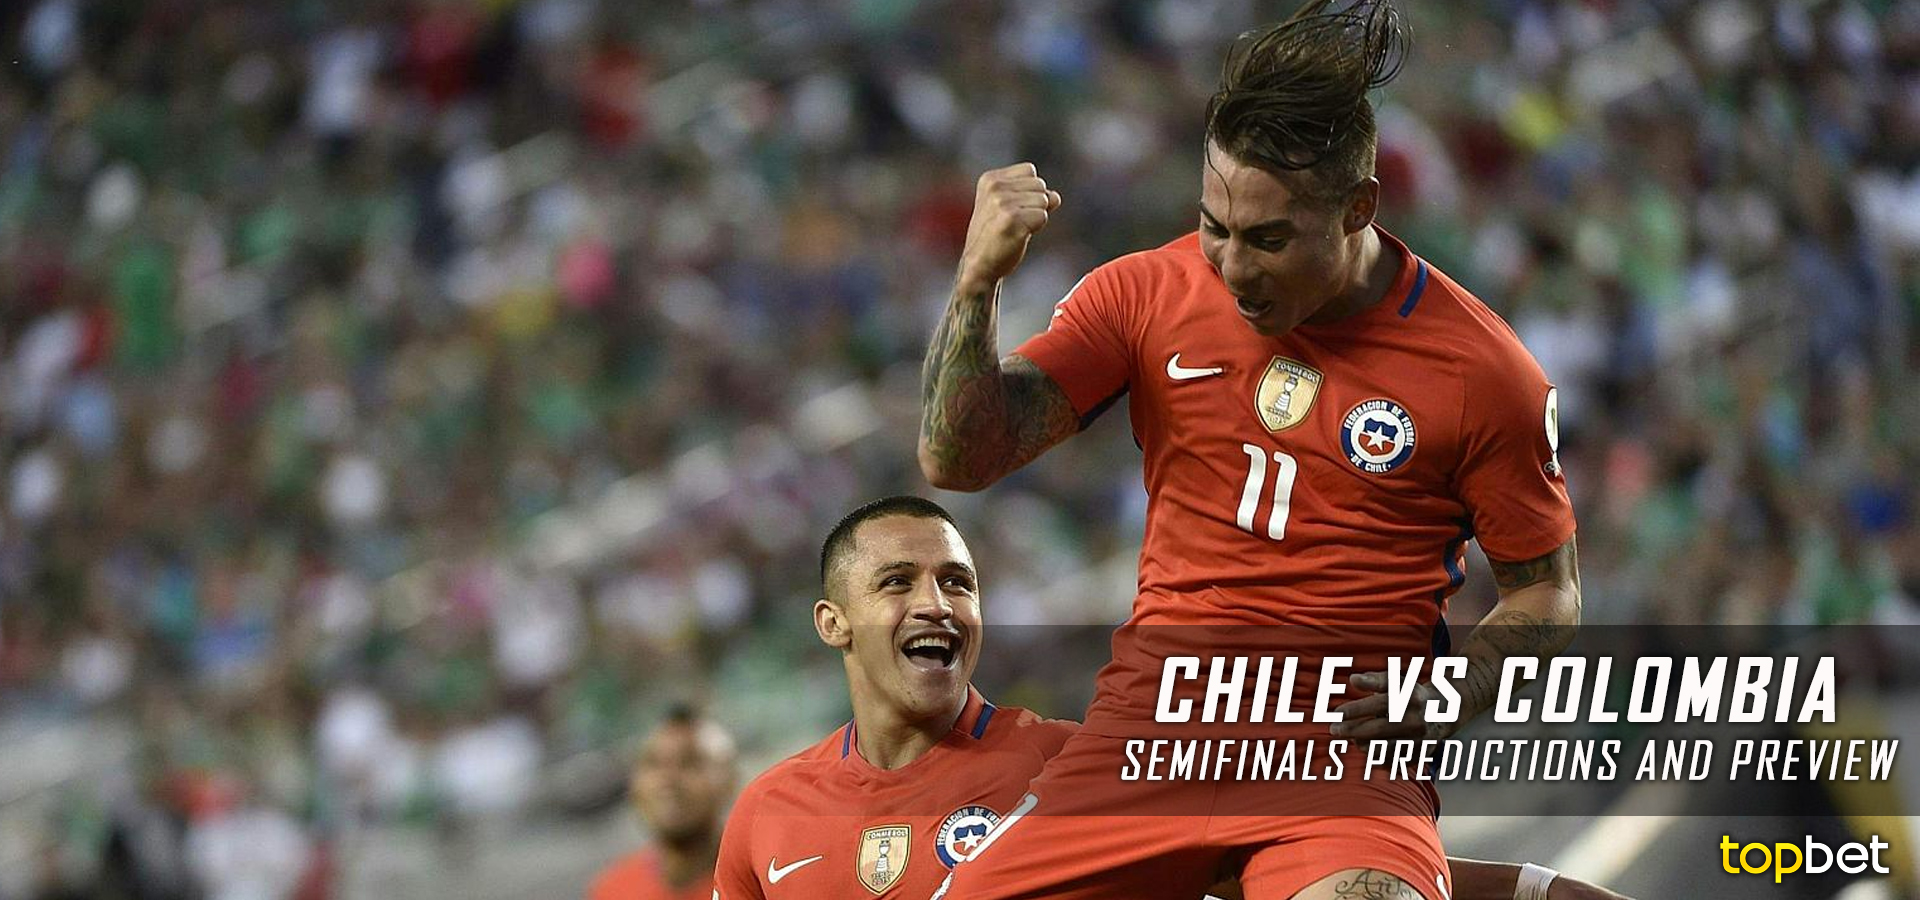 Chile vs Colombia 2016 Copa America Semifinals Predictions